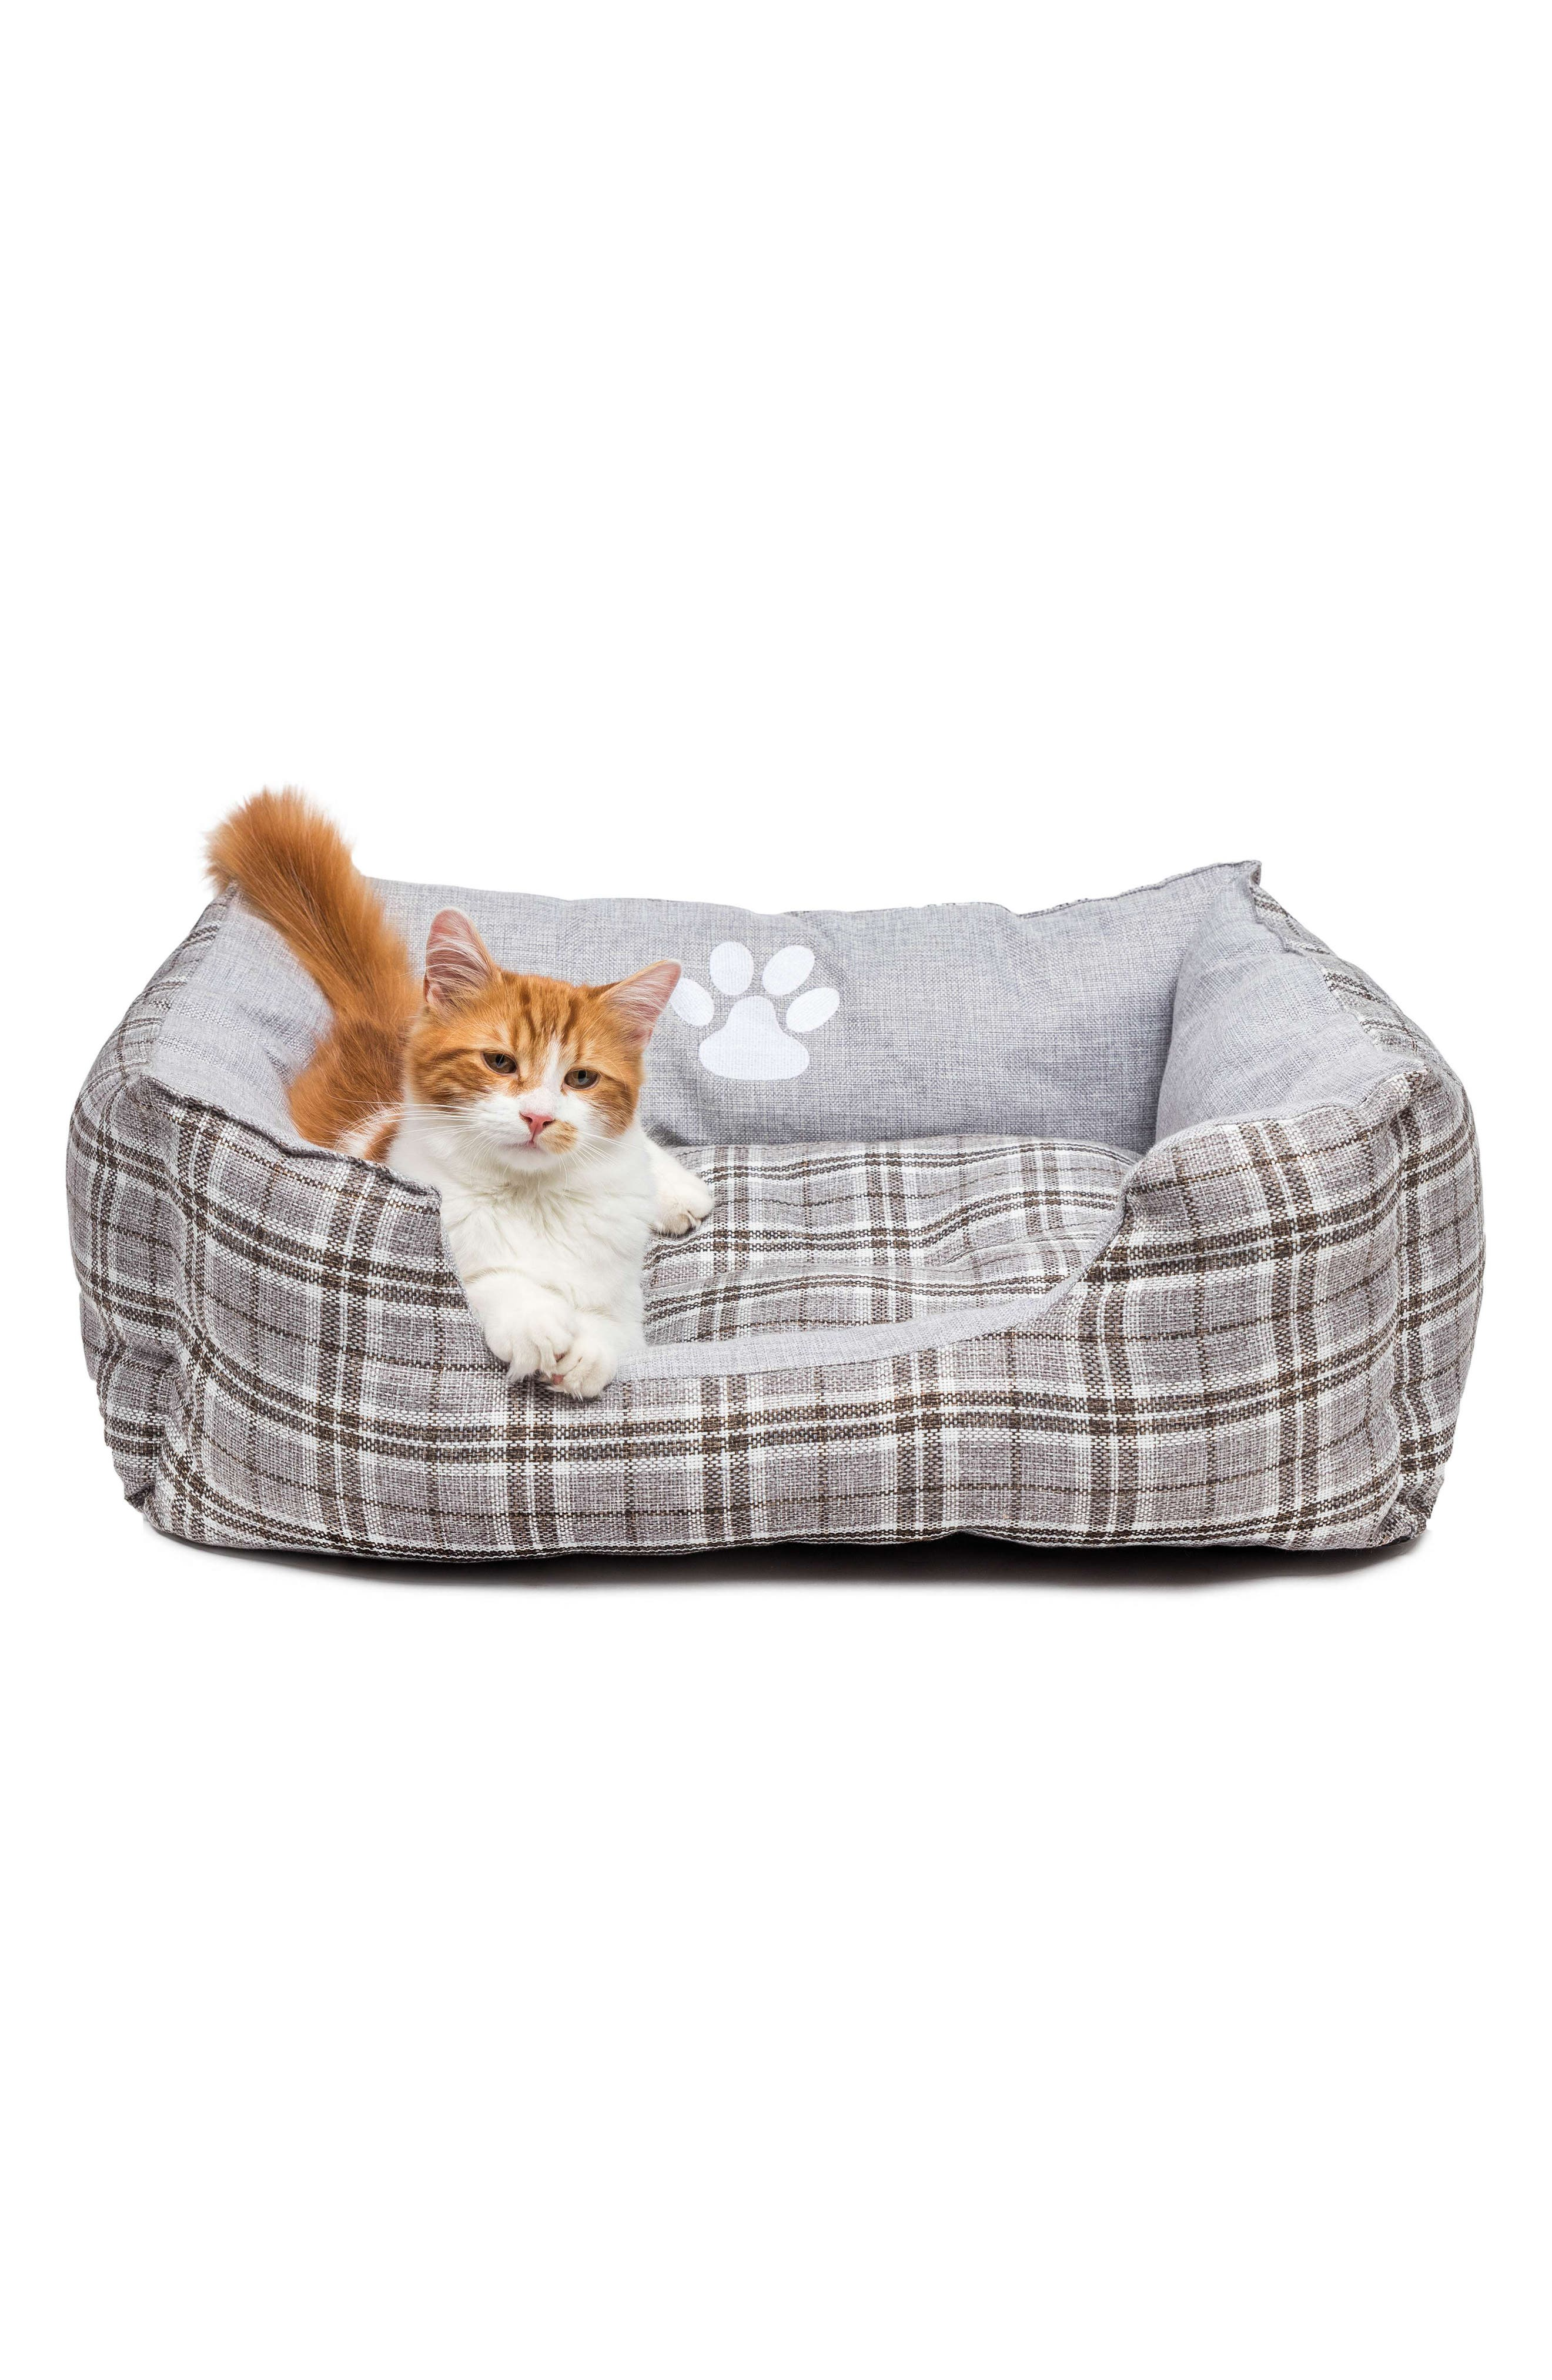 Harlee Small Square Pet Bed,                             Alternate thumbnail 3, color,                             020